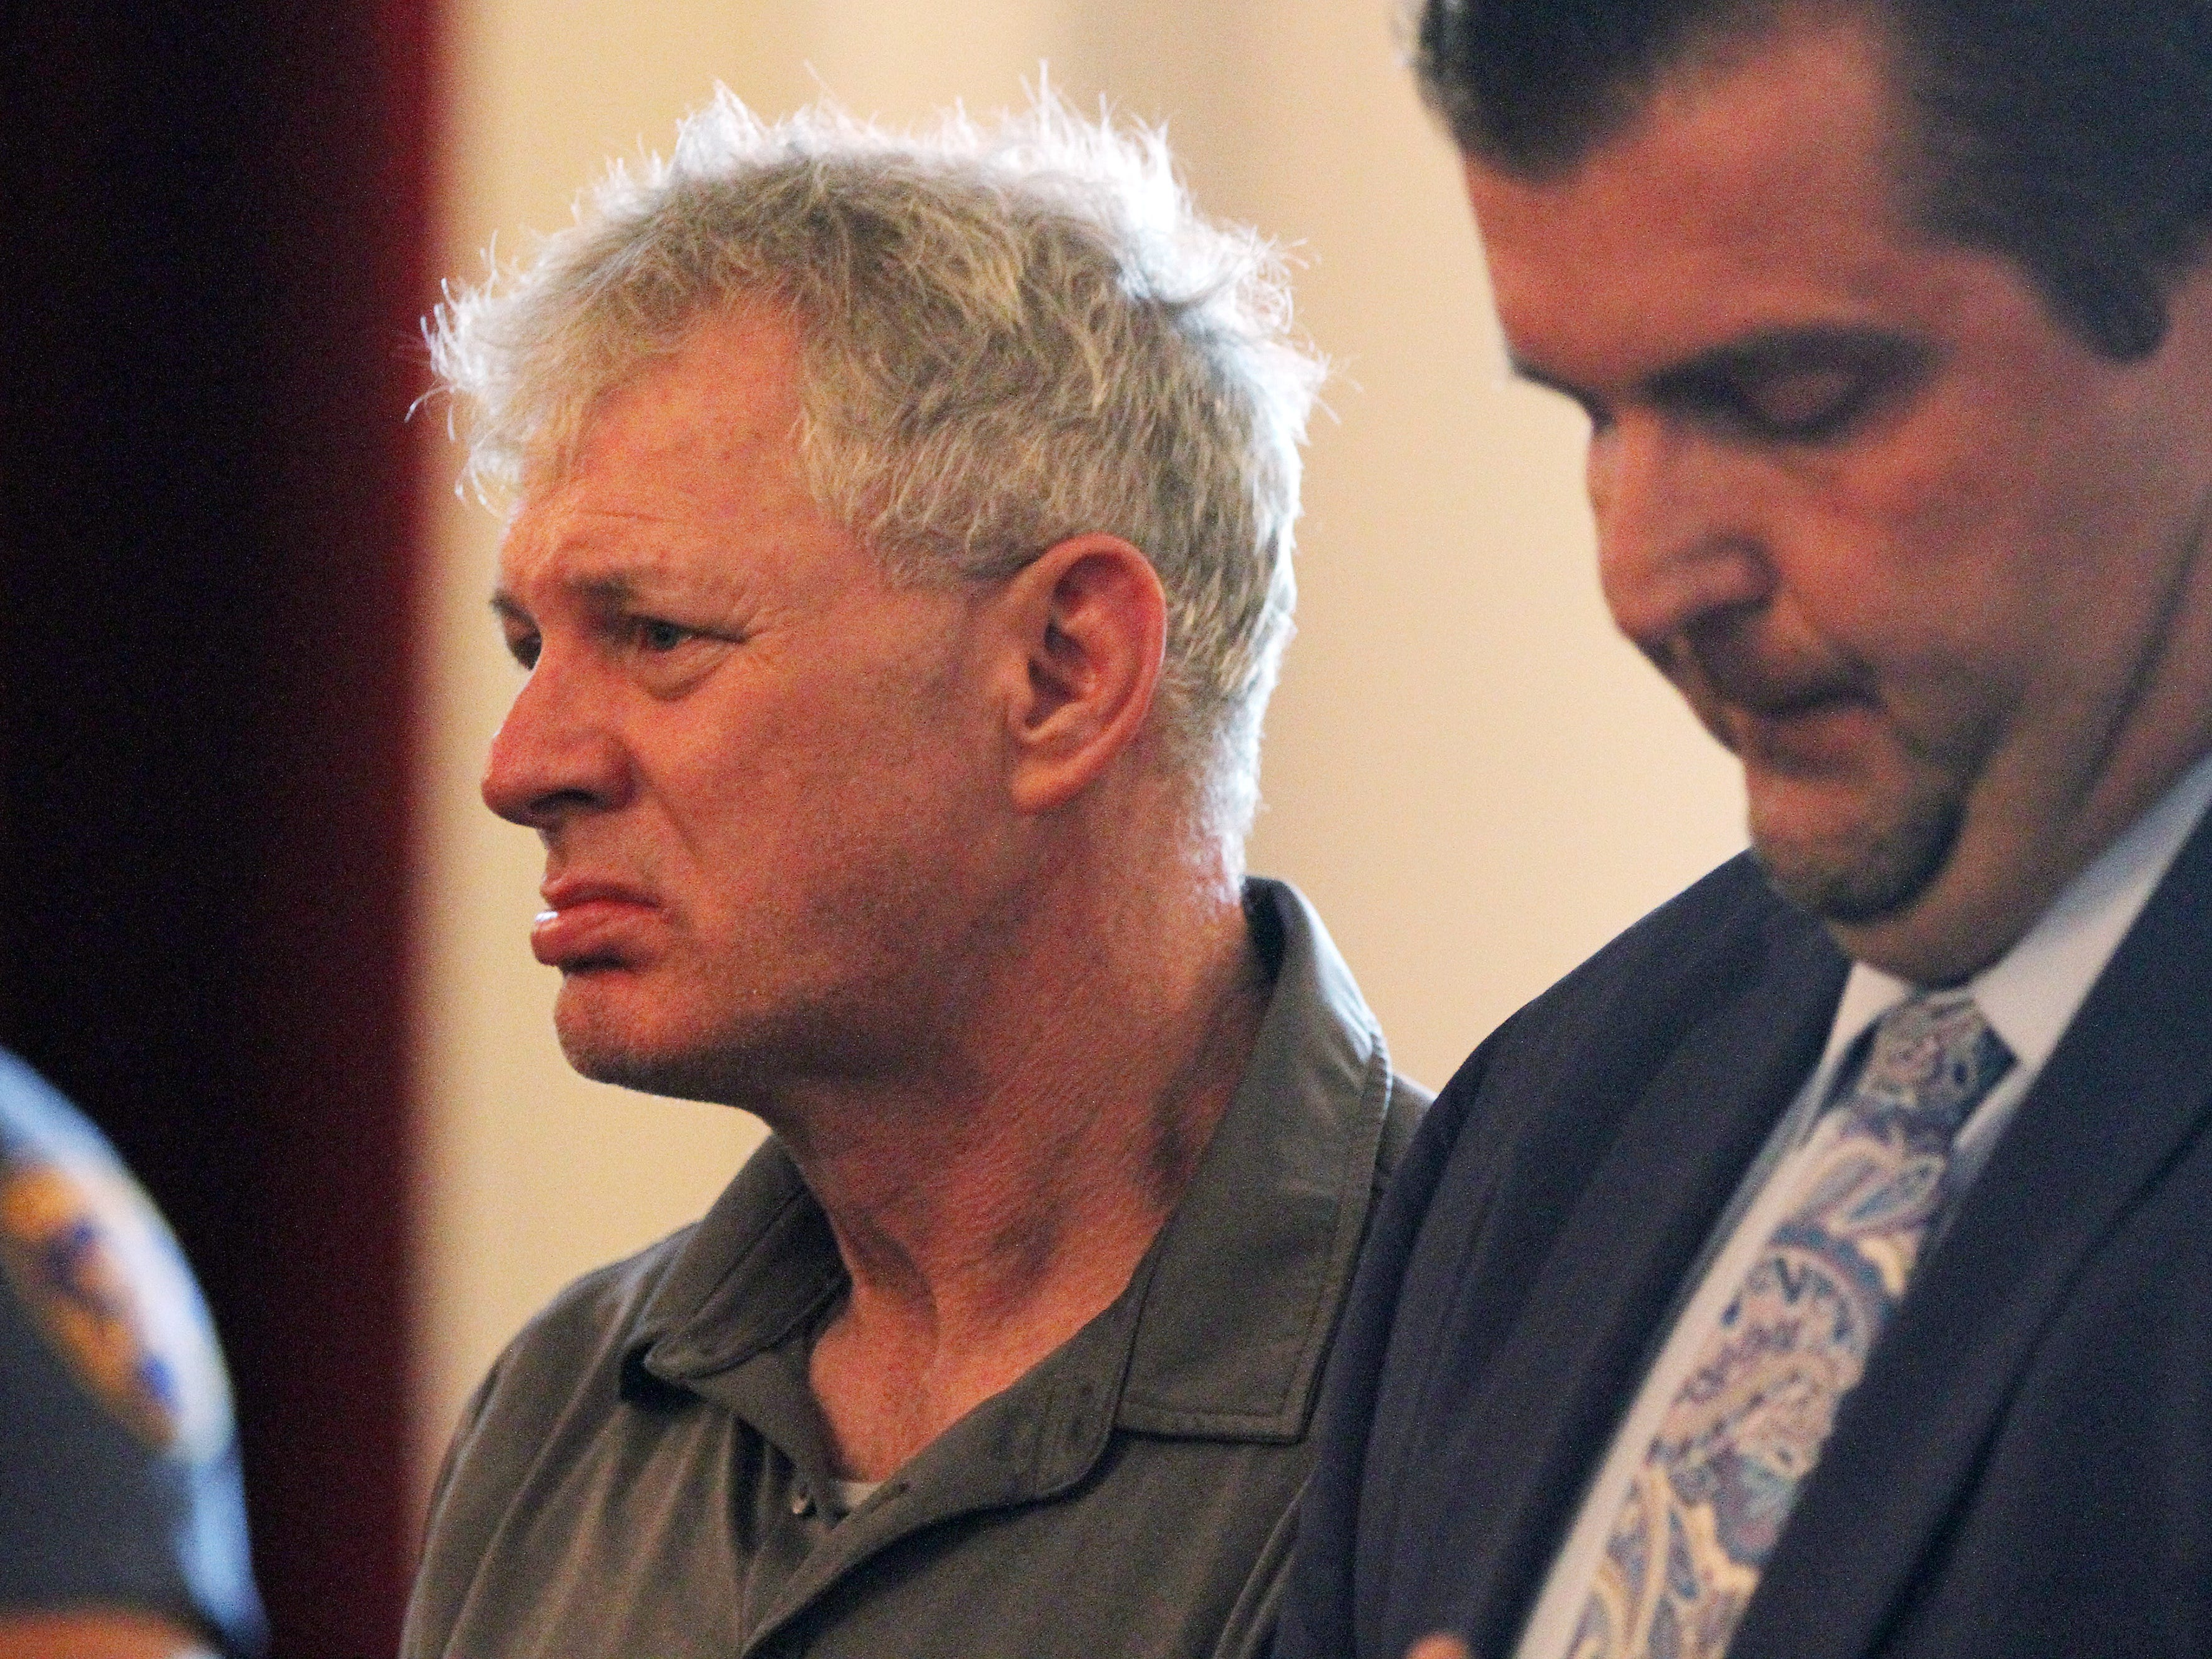 Former Major League Baseball player Lenny Dykstra, who is facing charges related to allegedly making terrorist threats against an Uber driver in Linden in May, rejects plea offer before Union County Superior Court Judge Joseph Donahue at Union County Courthouse in Elizabeth, NJ Thursday August 9, 2018. His case will go to the grand jury. His lawyer, Michael Brucki, stands next to him.